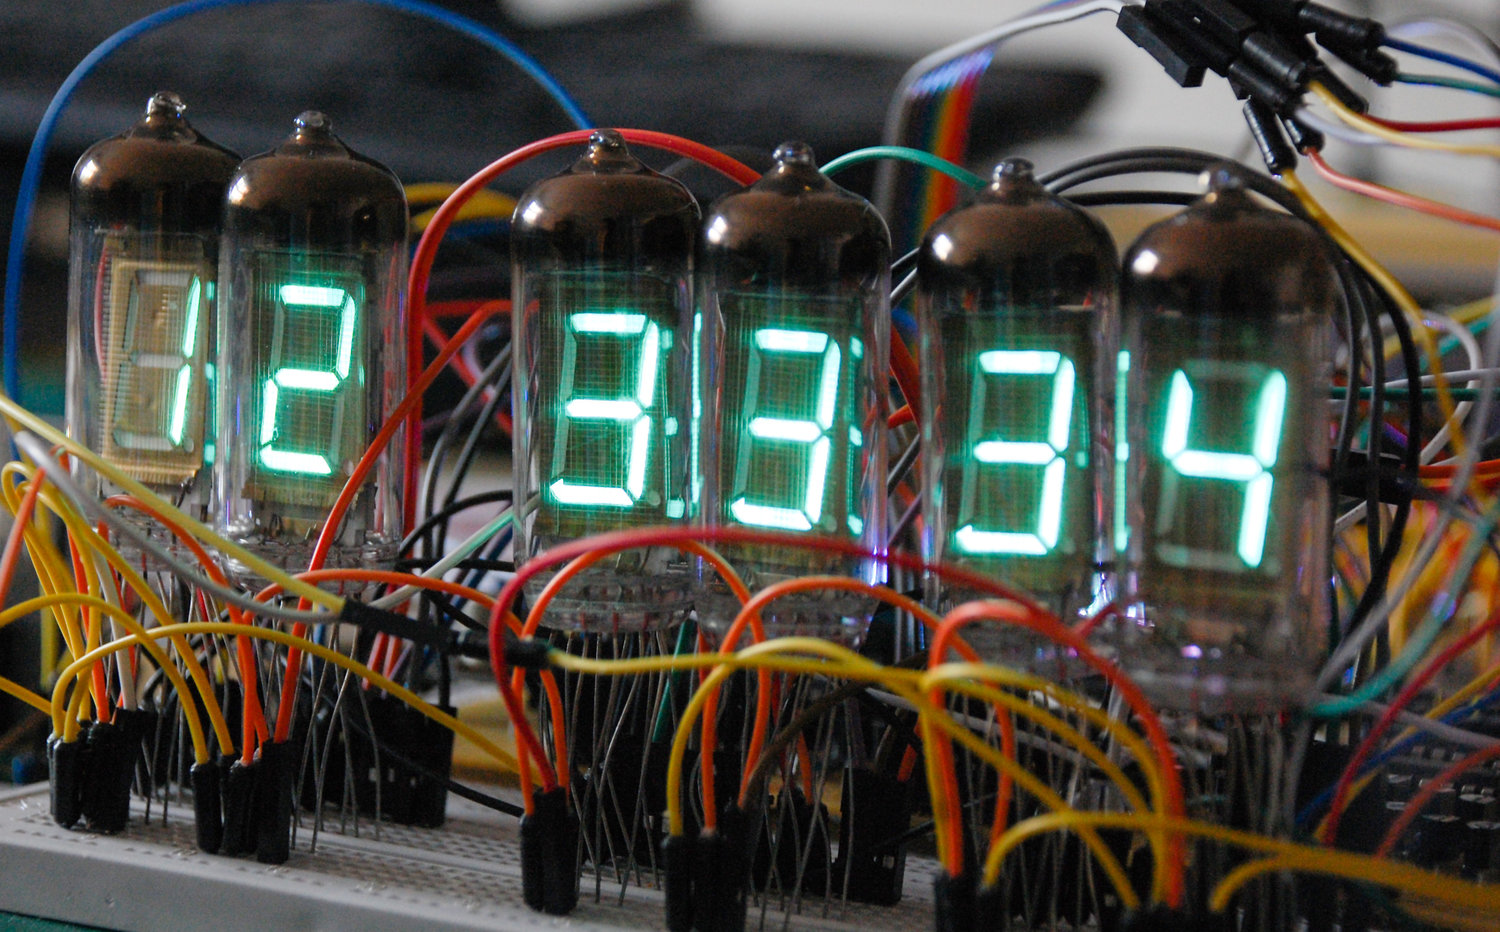 Designing Your Own Vfd Clock I The Tube Circuit Collective Right Side Is Their Drawing Left Timer